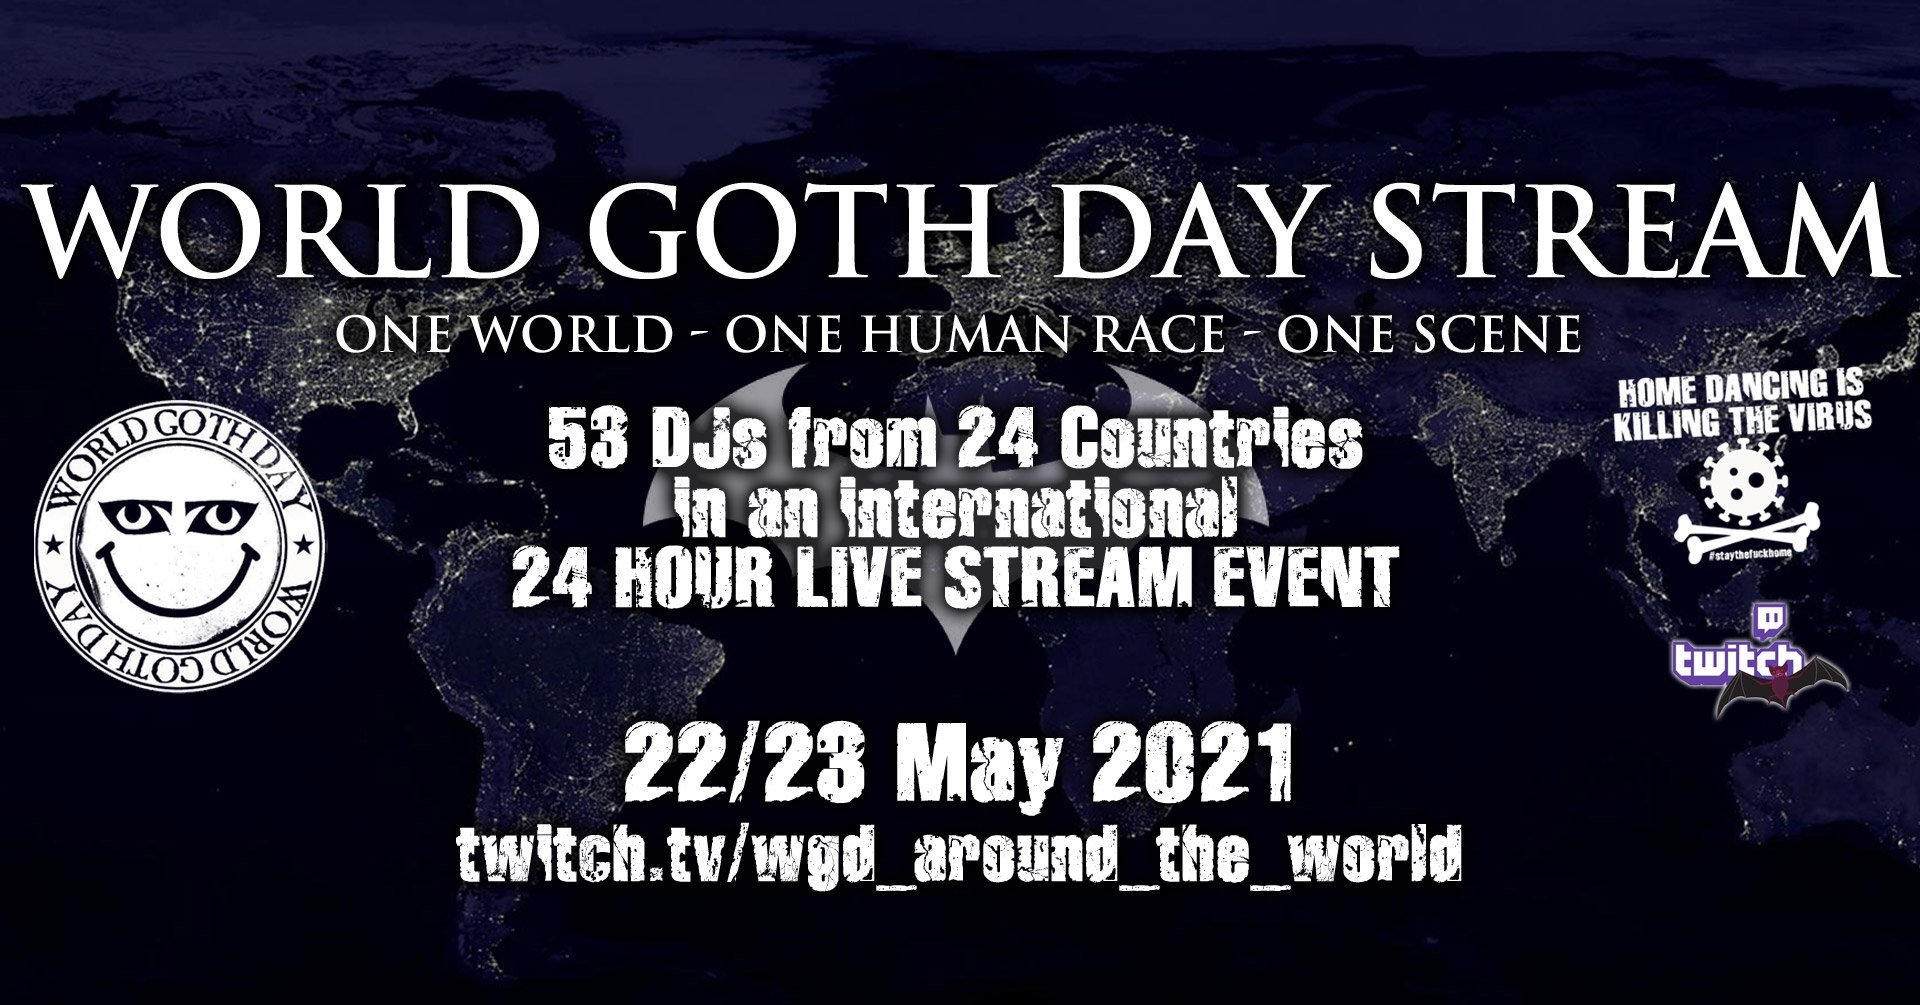 World Goth Day Stream 2021 Prague